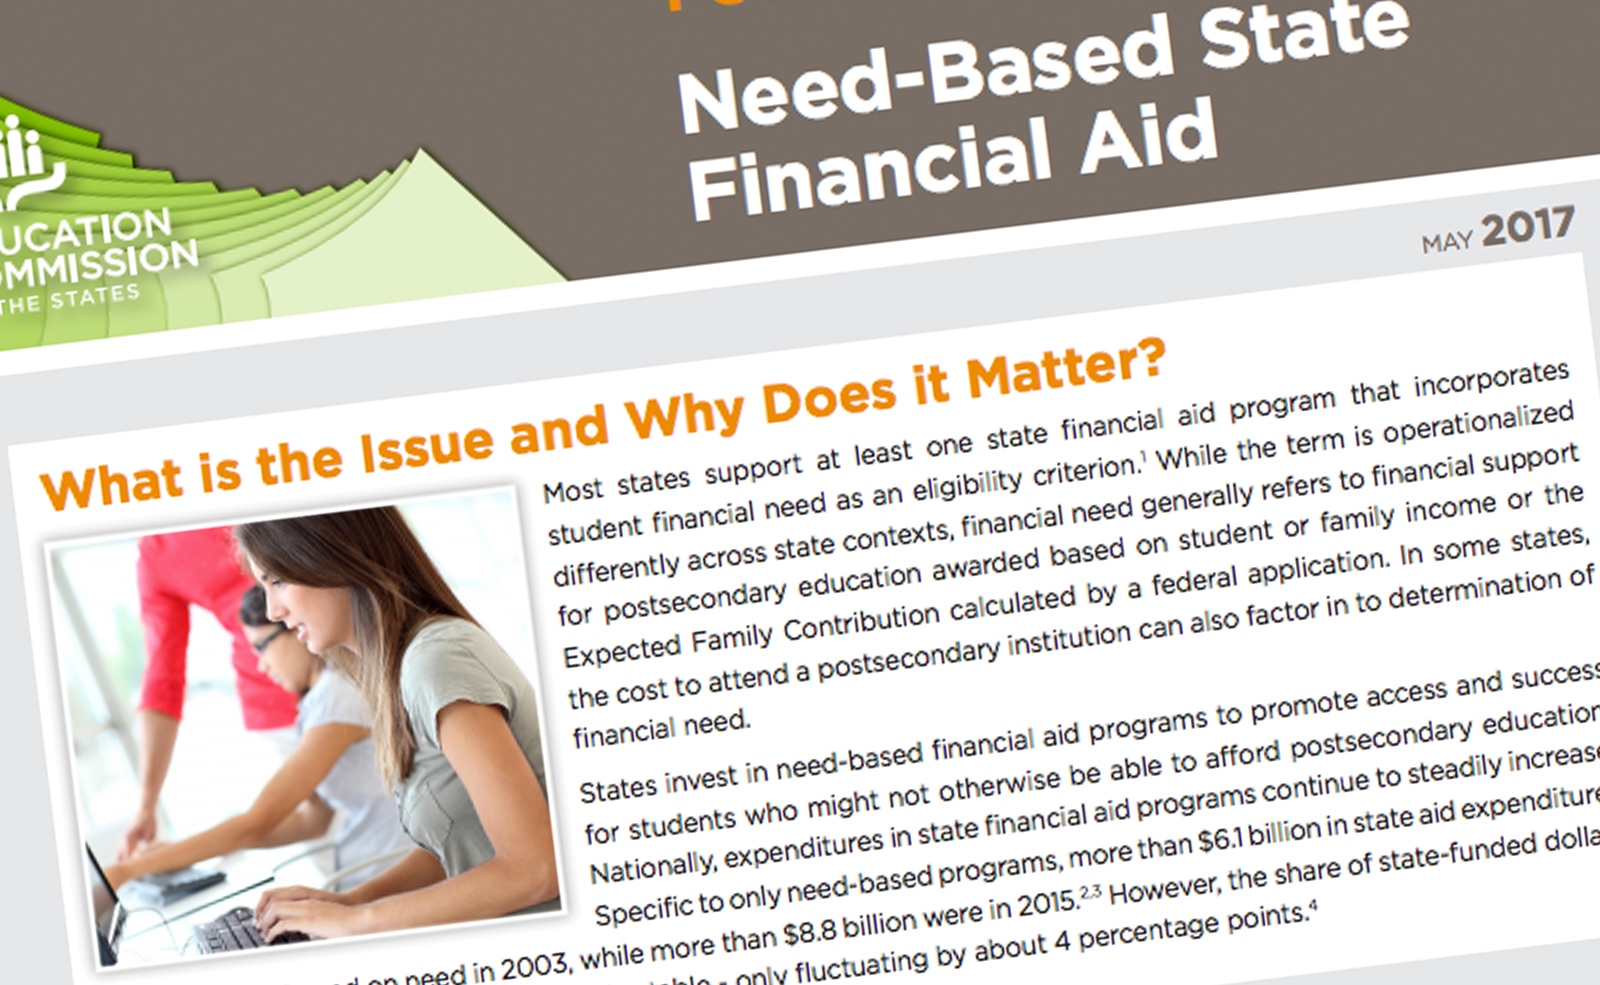 need-based state financial aid